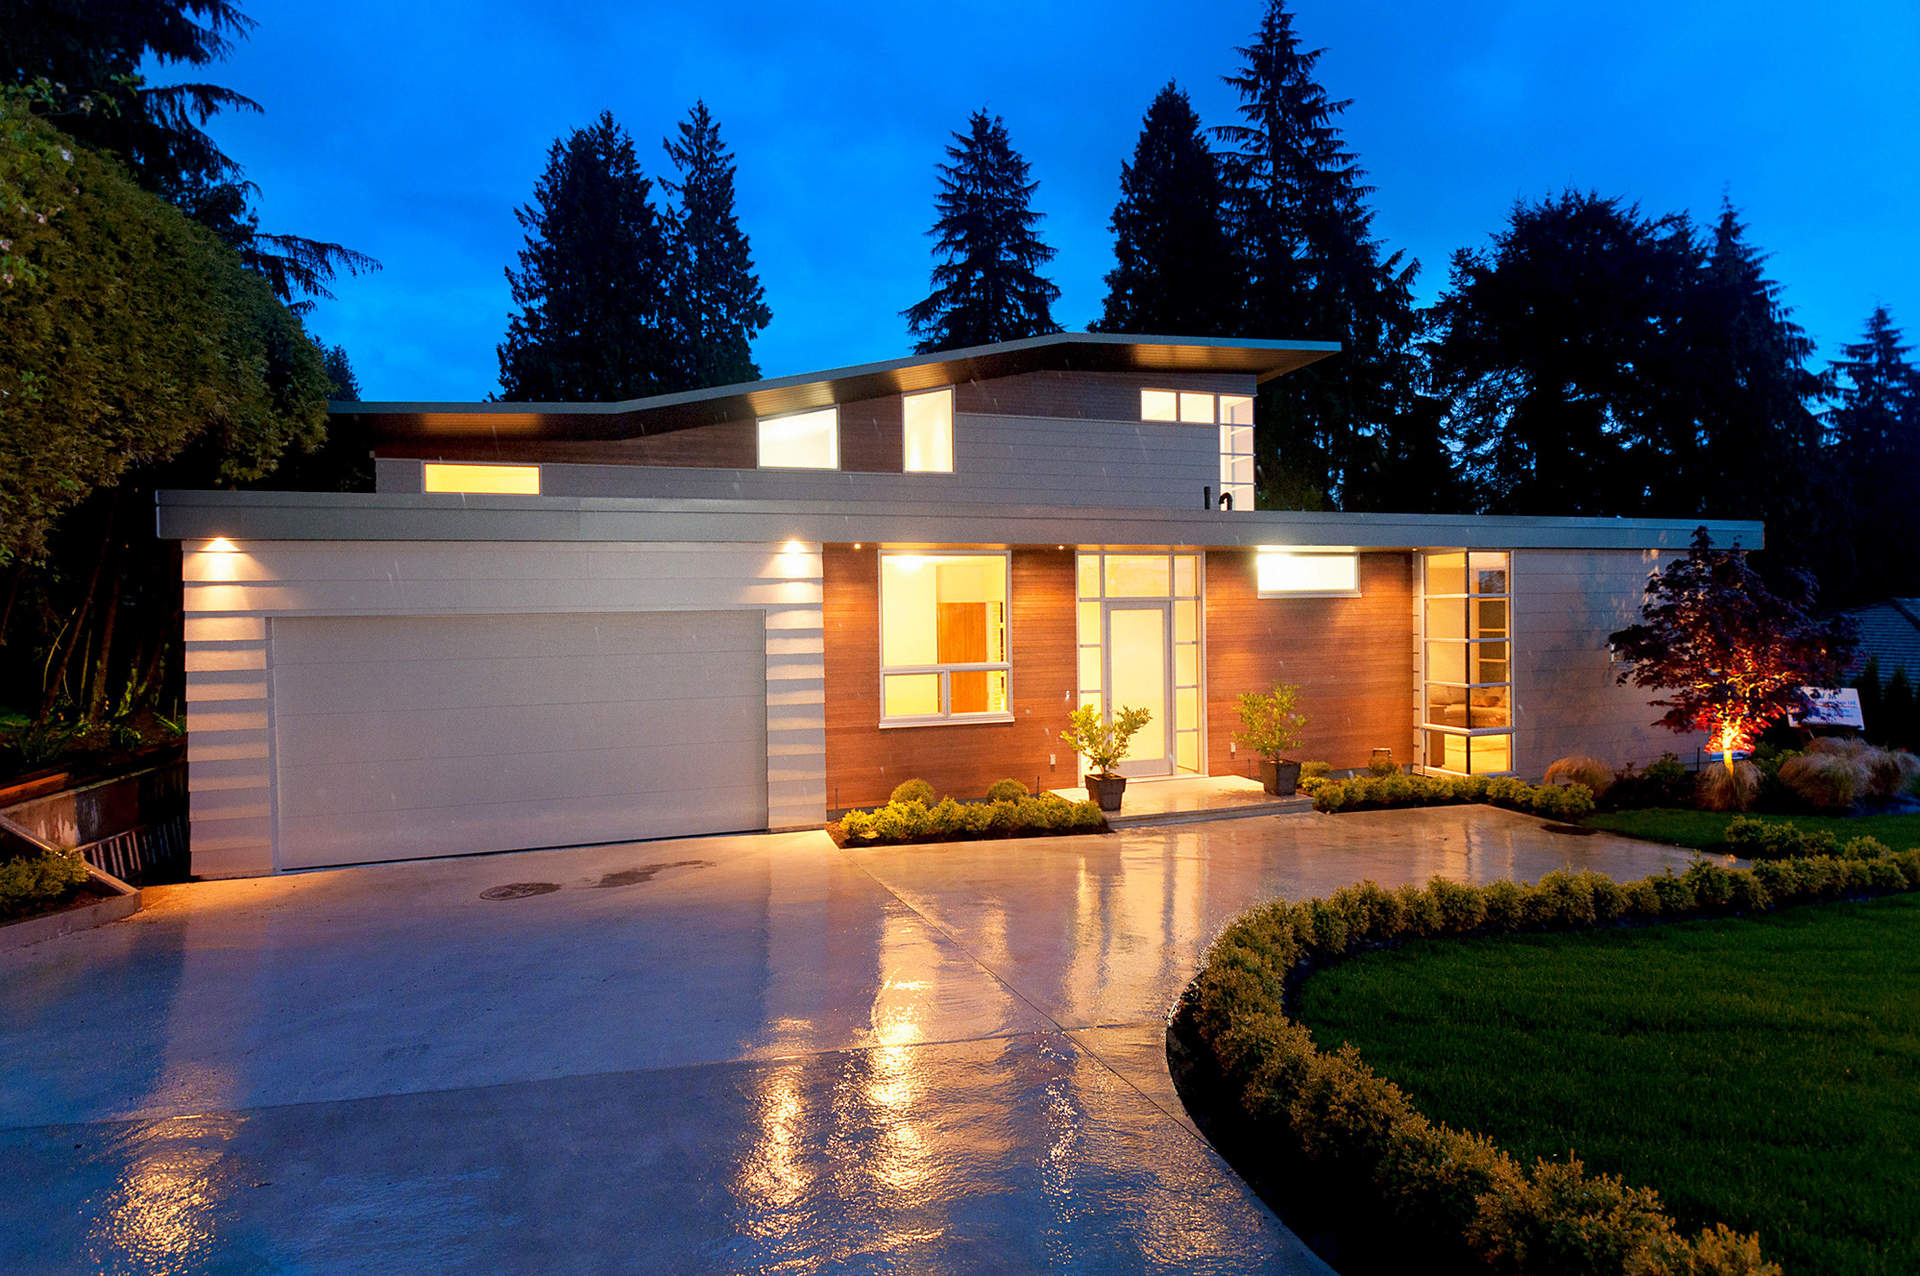 Spectacular Contemporary Residence in the Heart of Ambleside - HST include in Price!